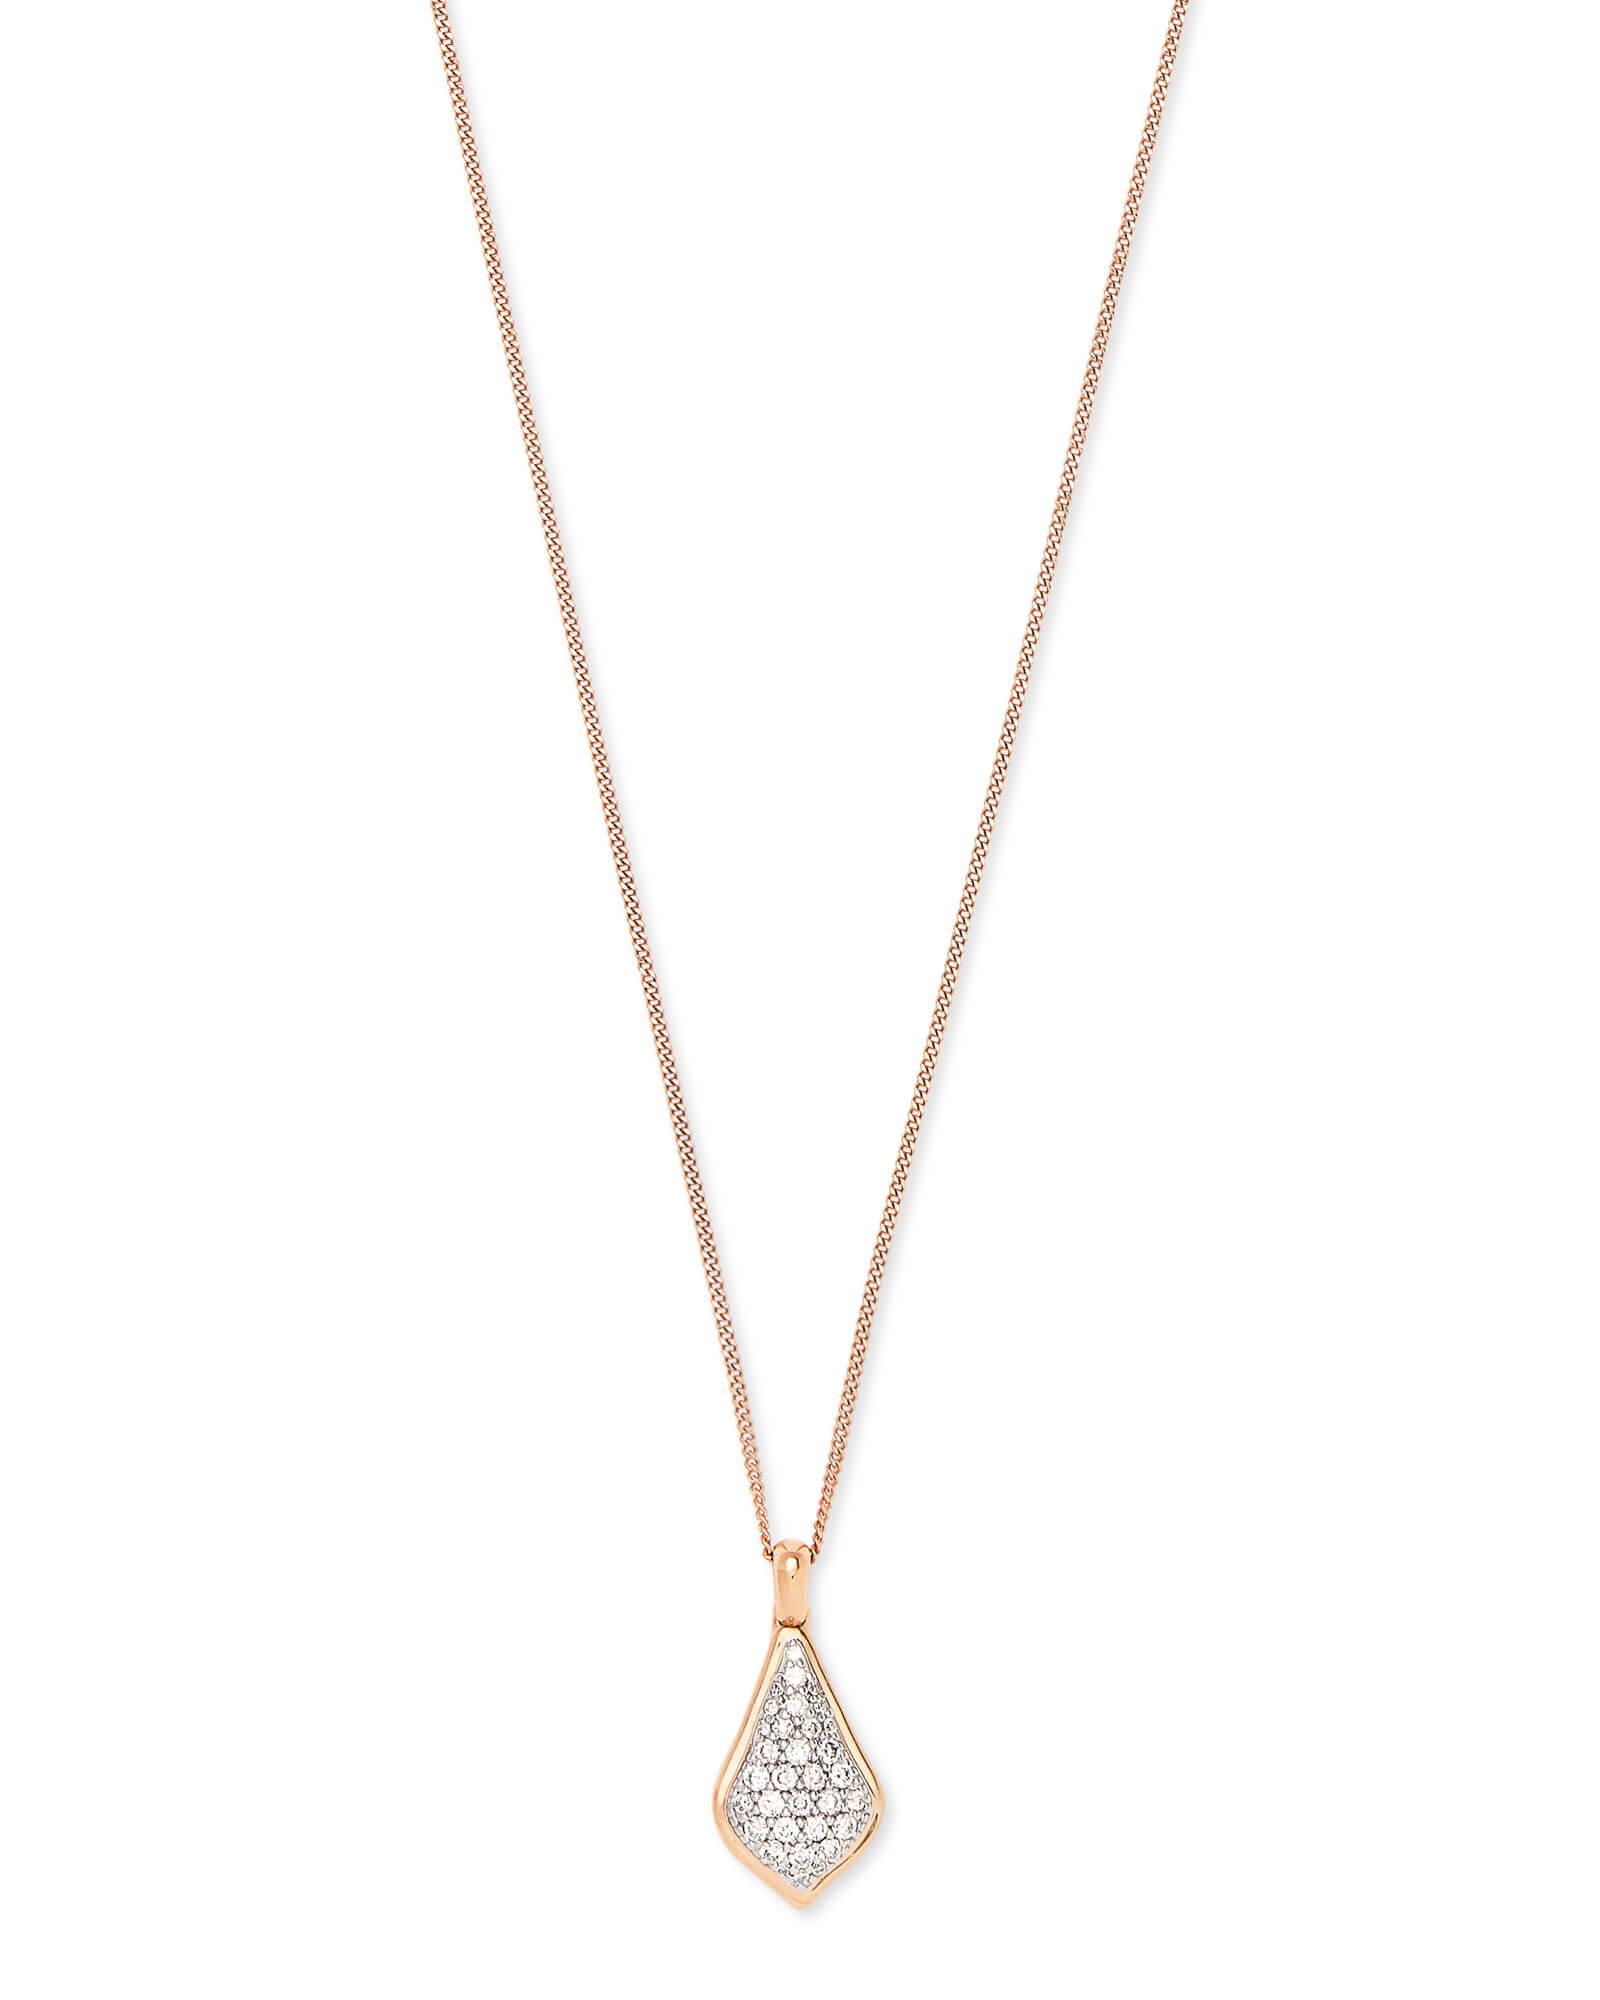 Lela Pendant Necklace in Pave Diamond and 14k Rose Gold